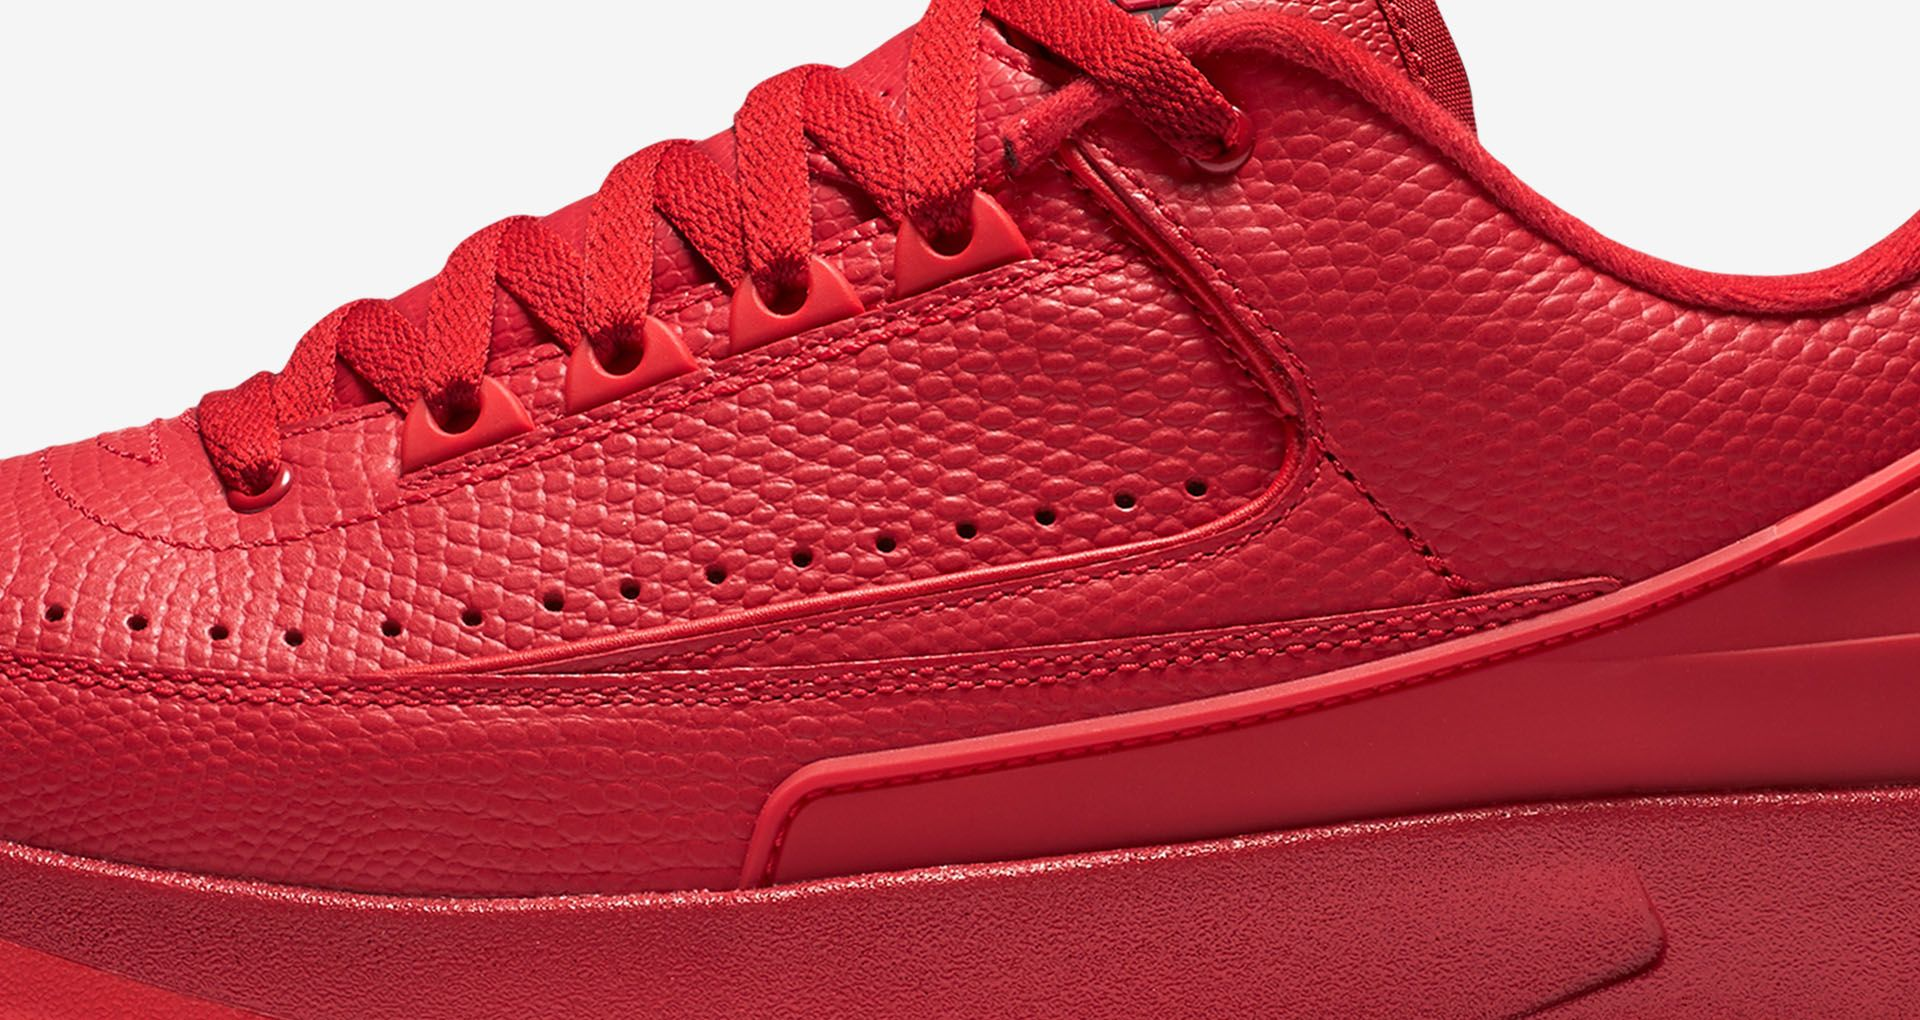 8bf47cdd150f8b Air Jordan 2 Retro Low  Gym Red  Release Date. Nike⁠+ SNKRS